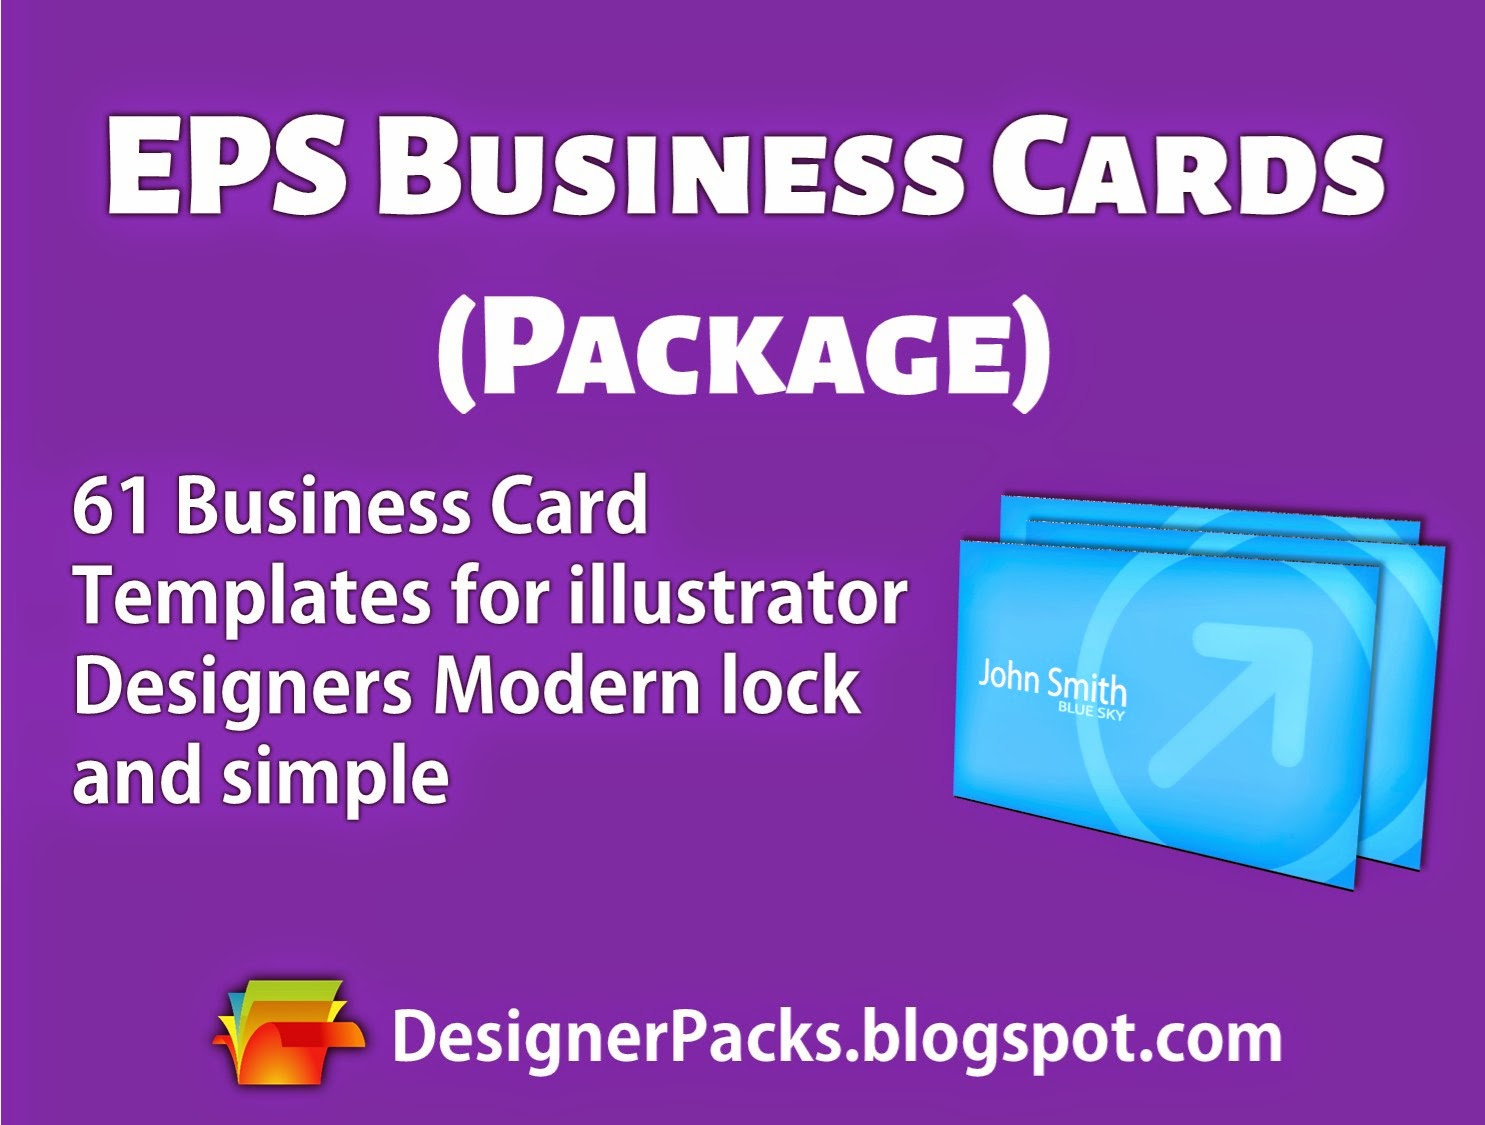 61 eps business card templates pack free download designer packs flashek Image collections